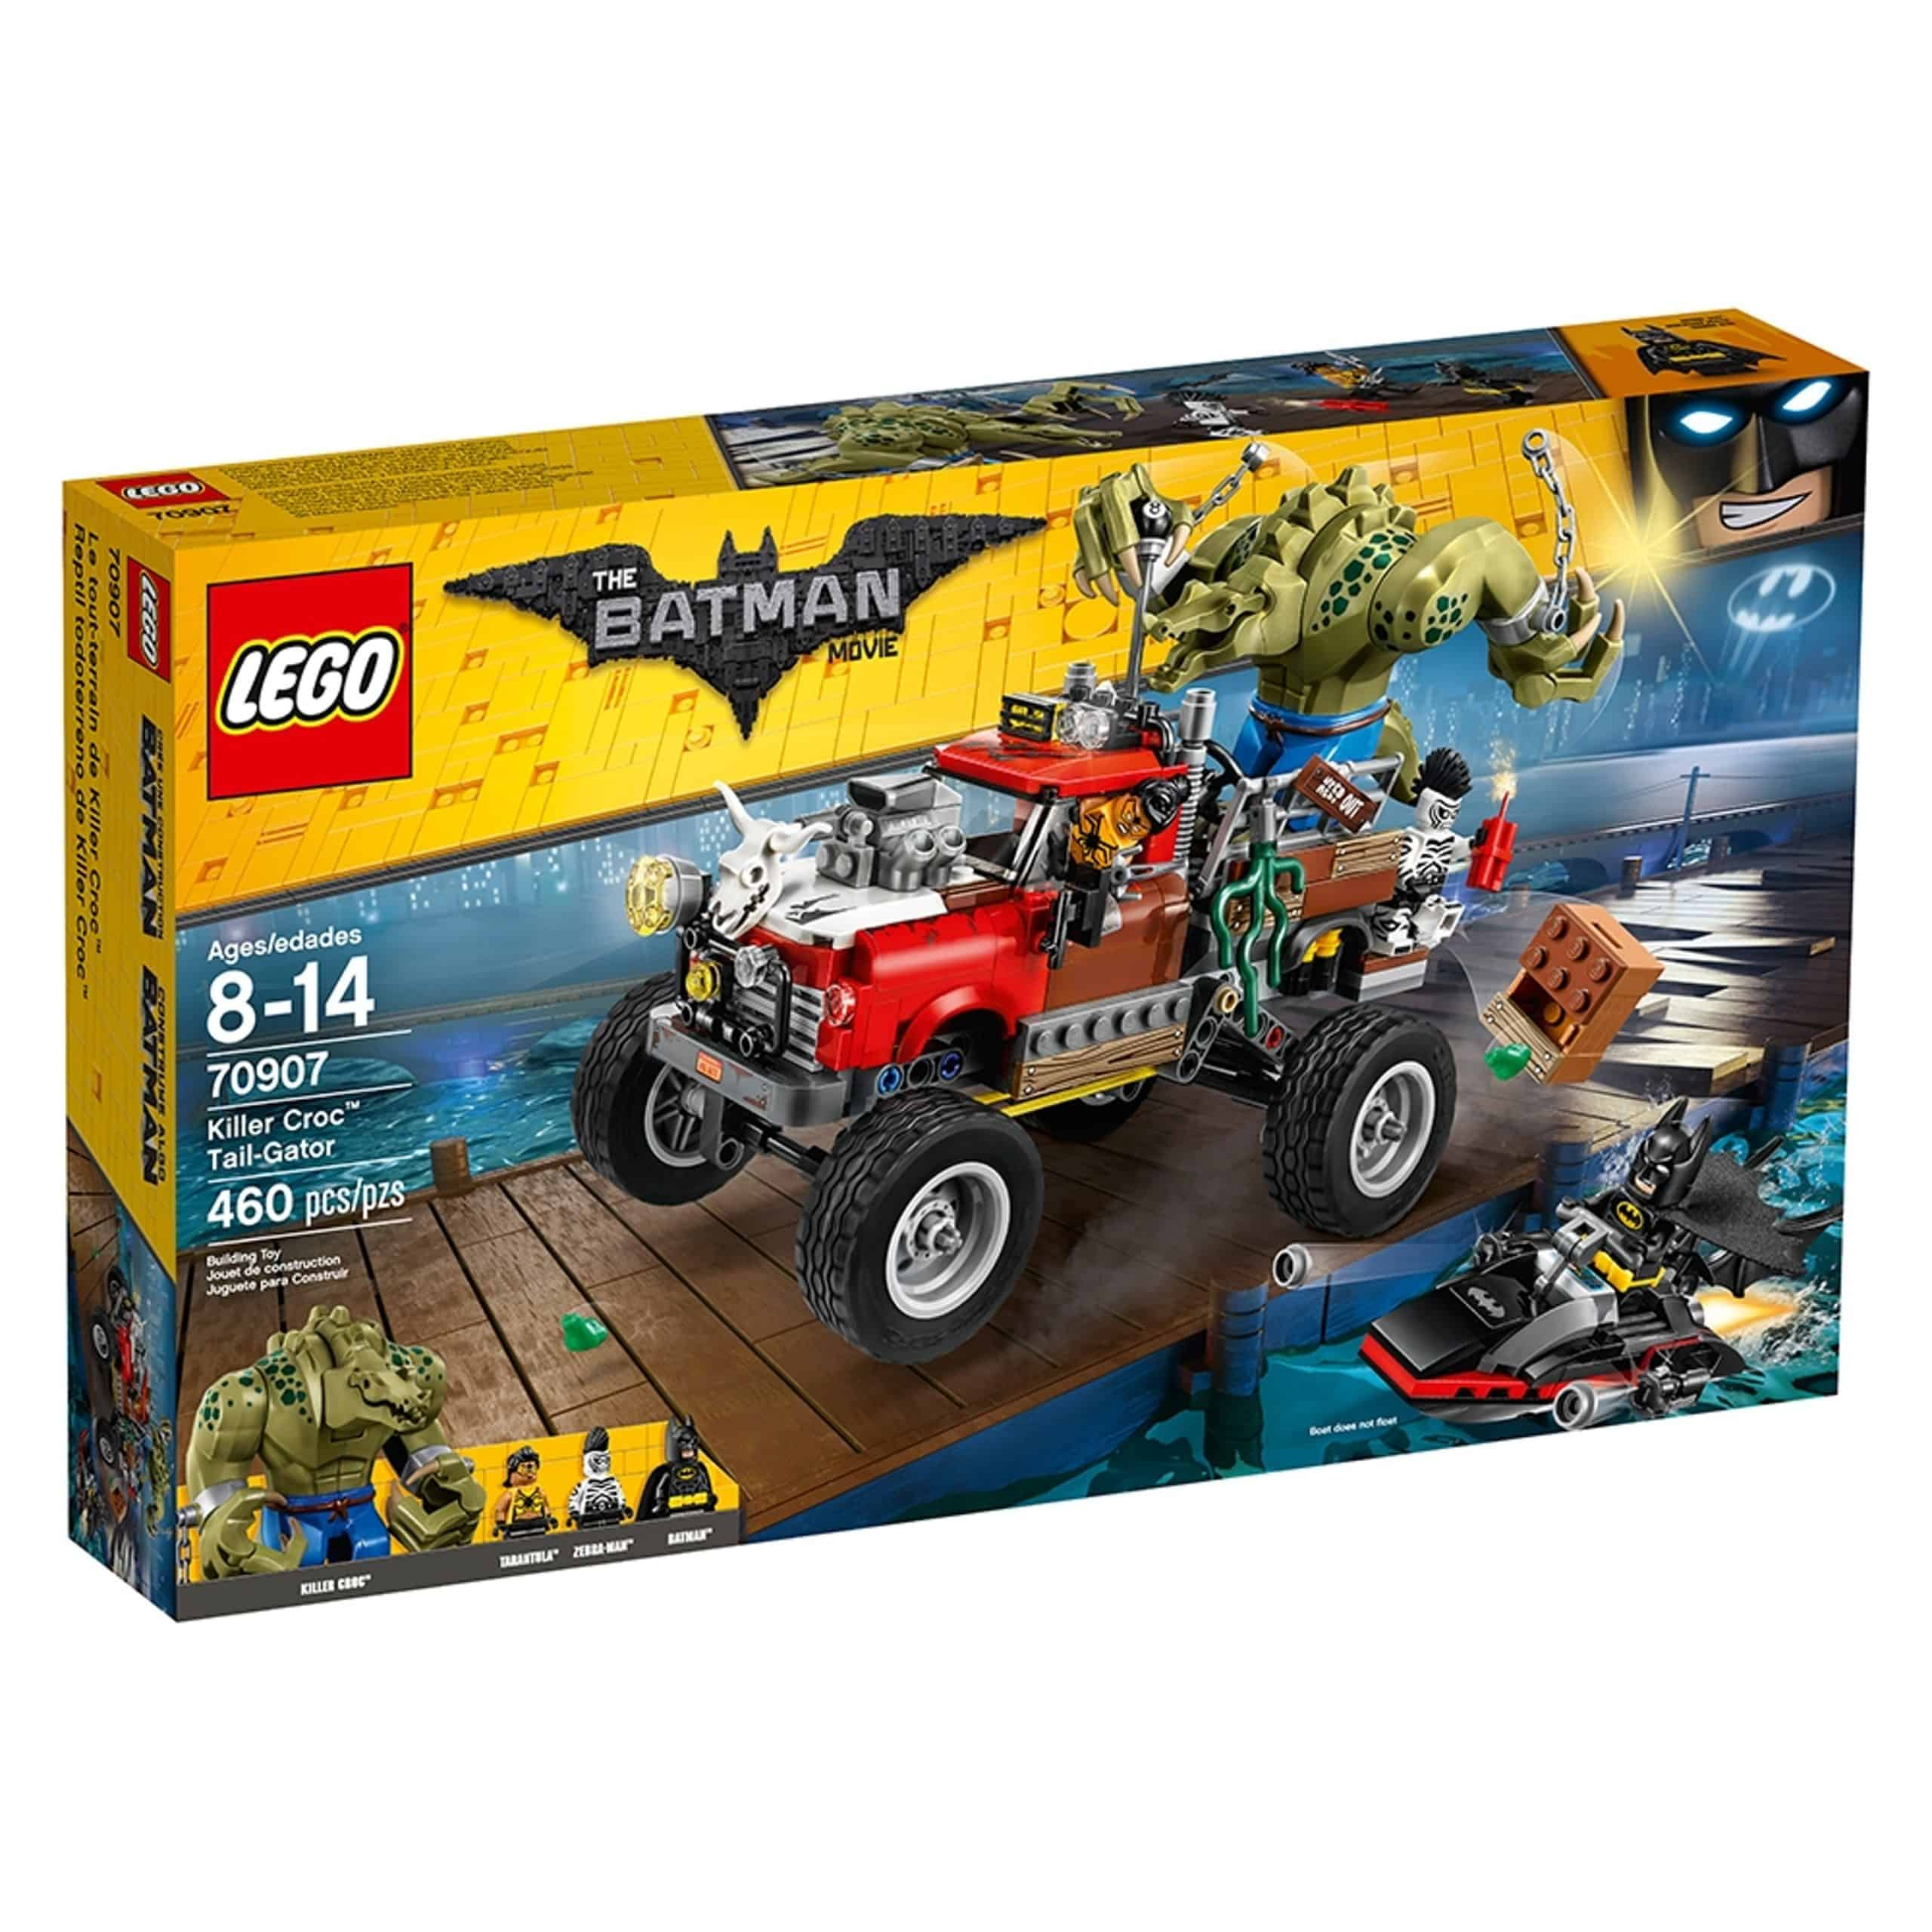 lego 70907 killer croc trafikknuser scaled